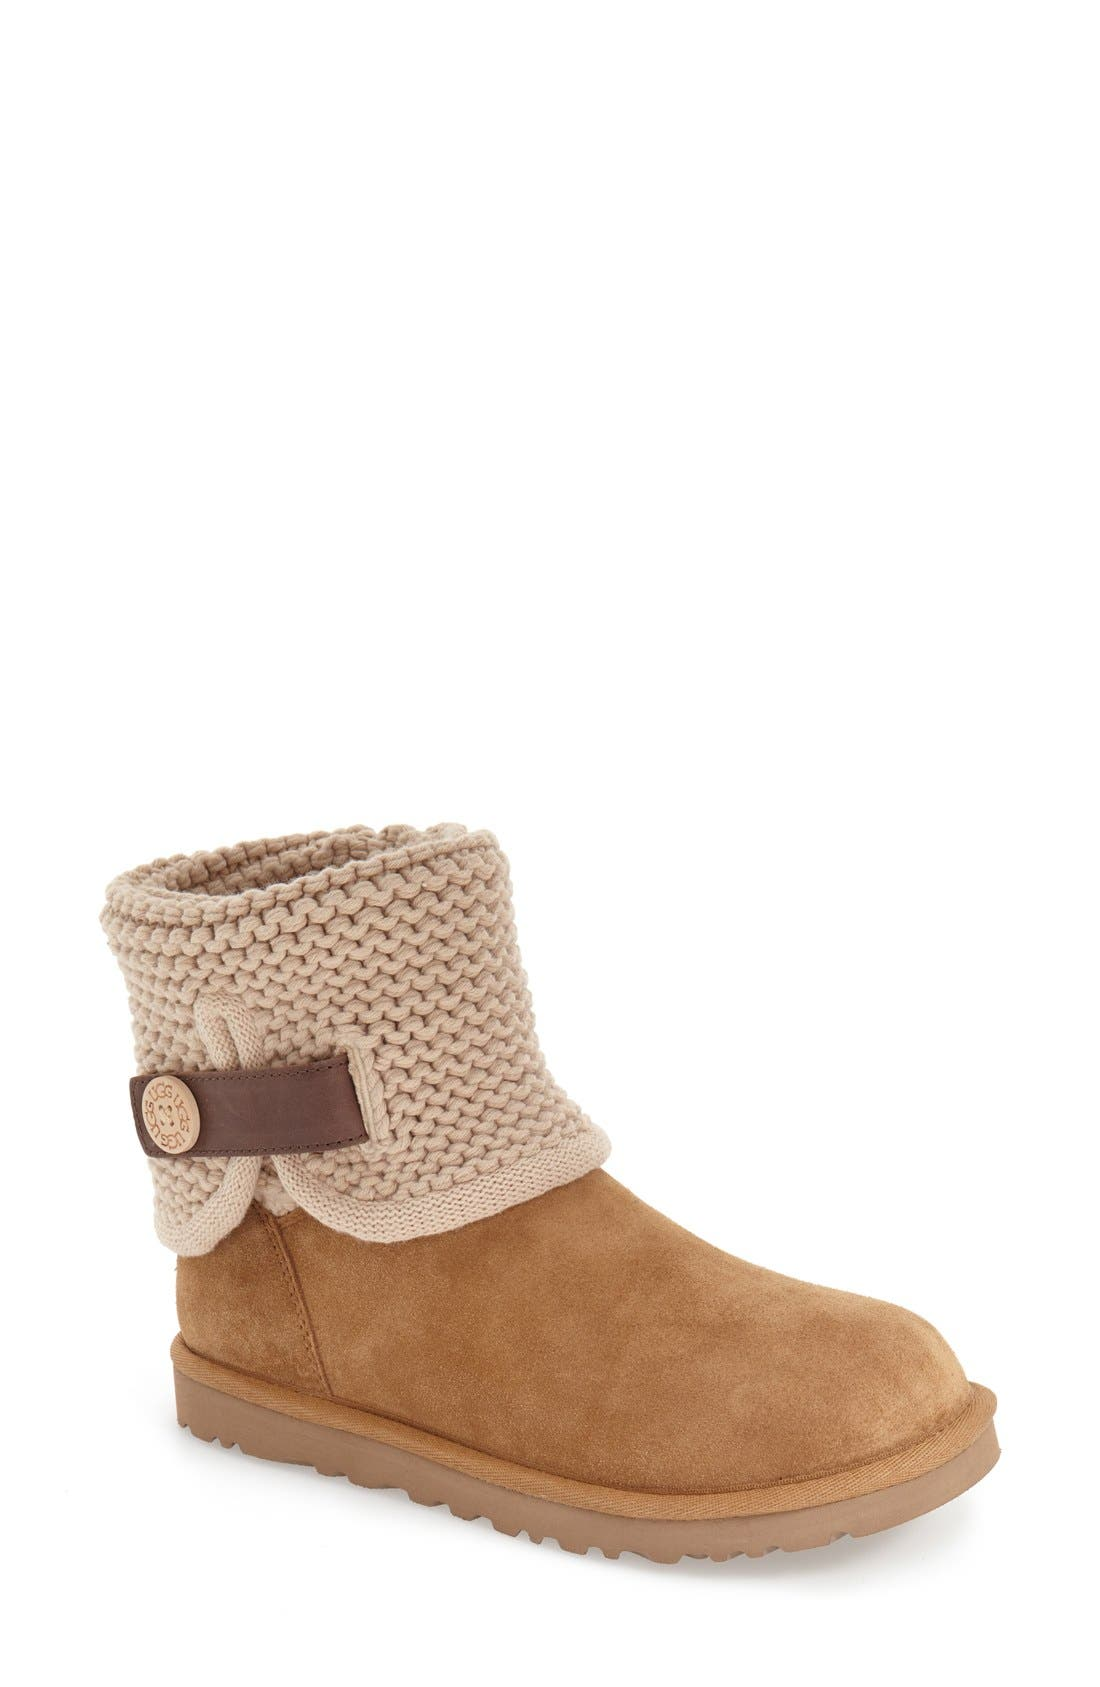 Alternate Image 1 Selected - UGG® Shaina Knit Cuff Bootie (Women)